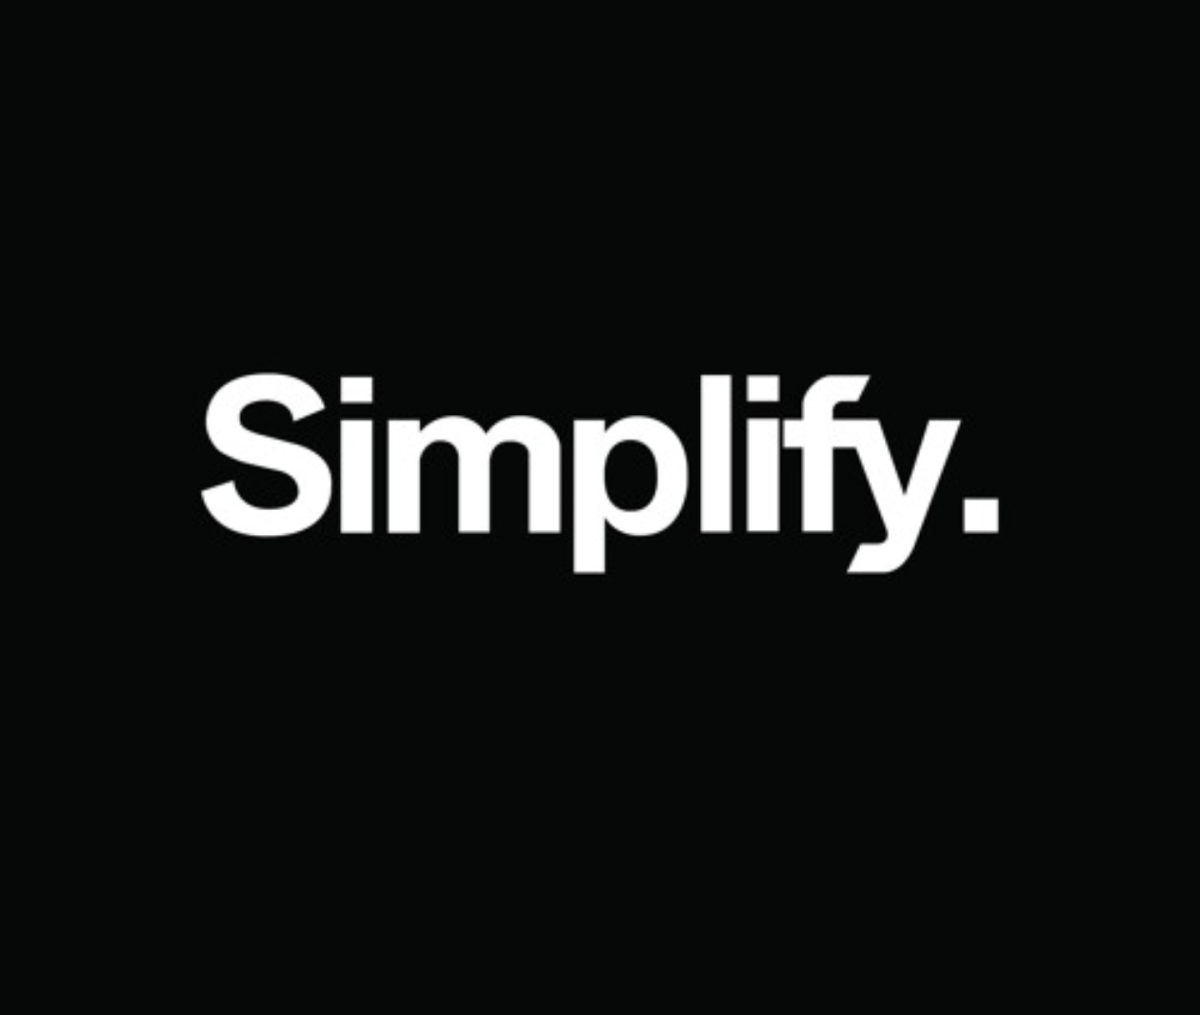 In 2018, we simplify